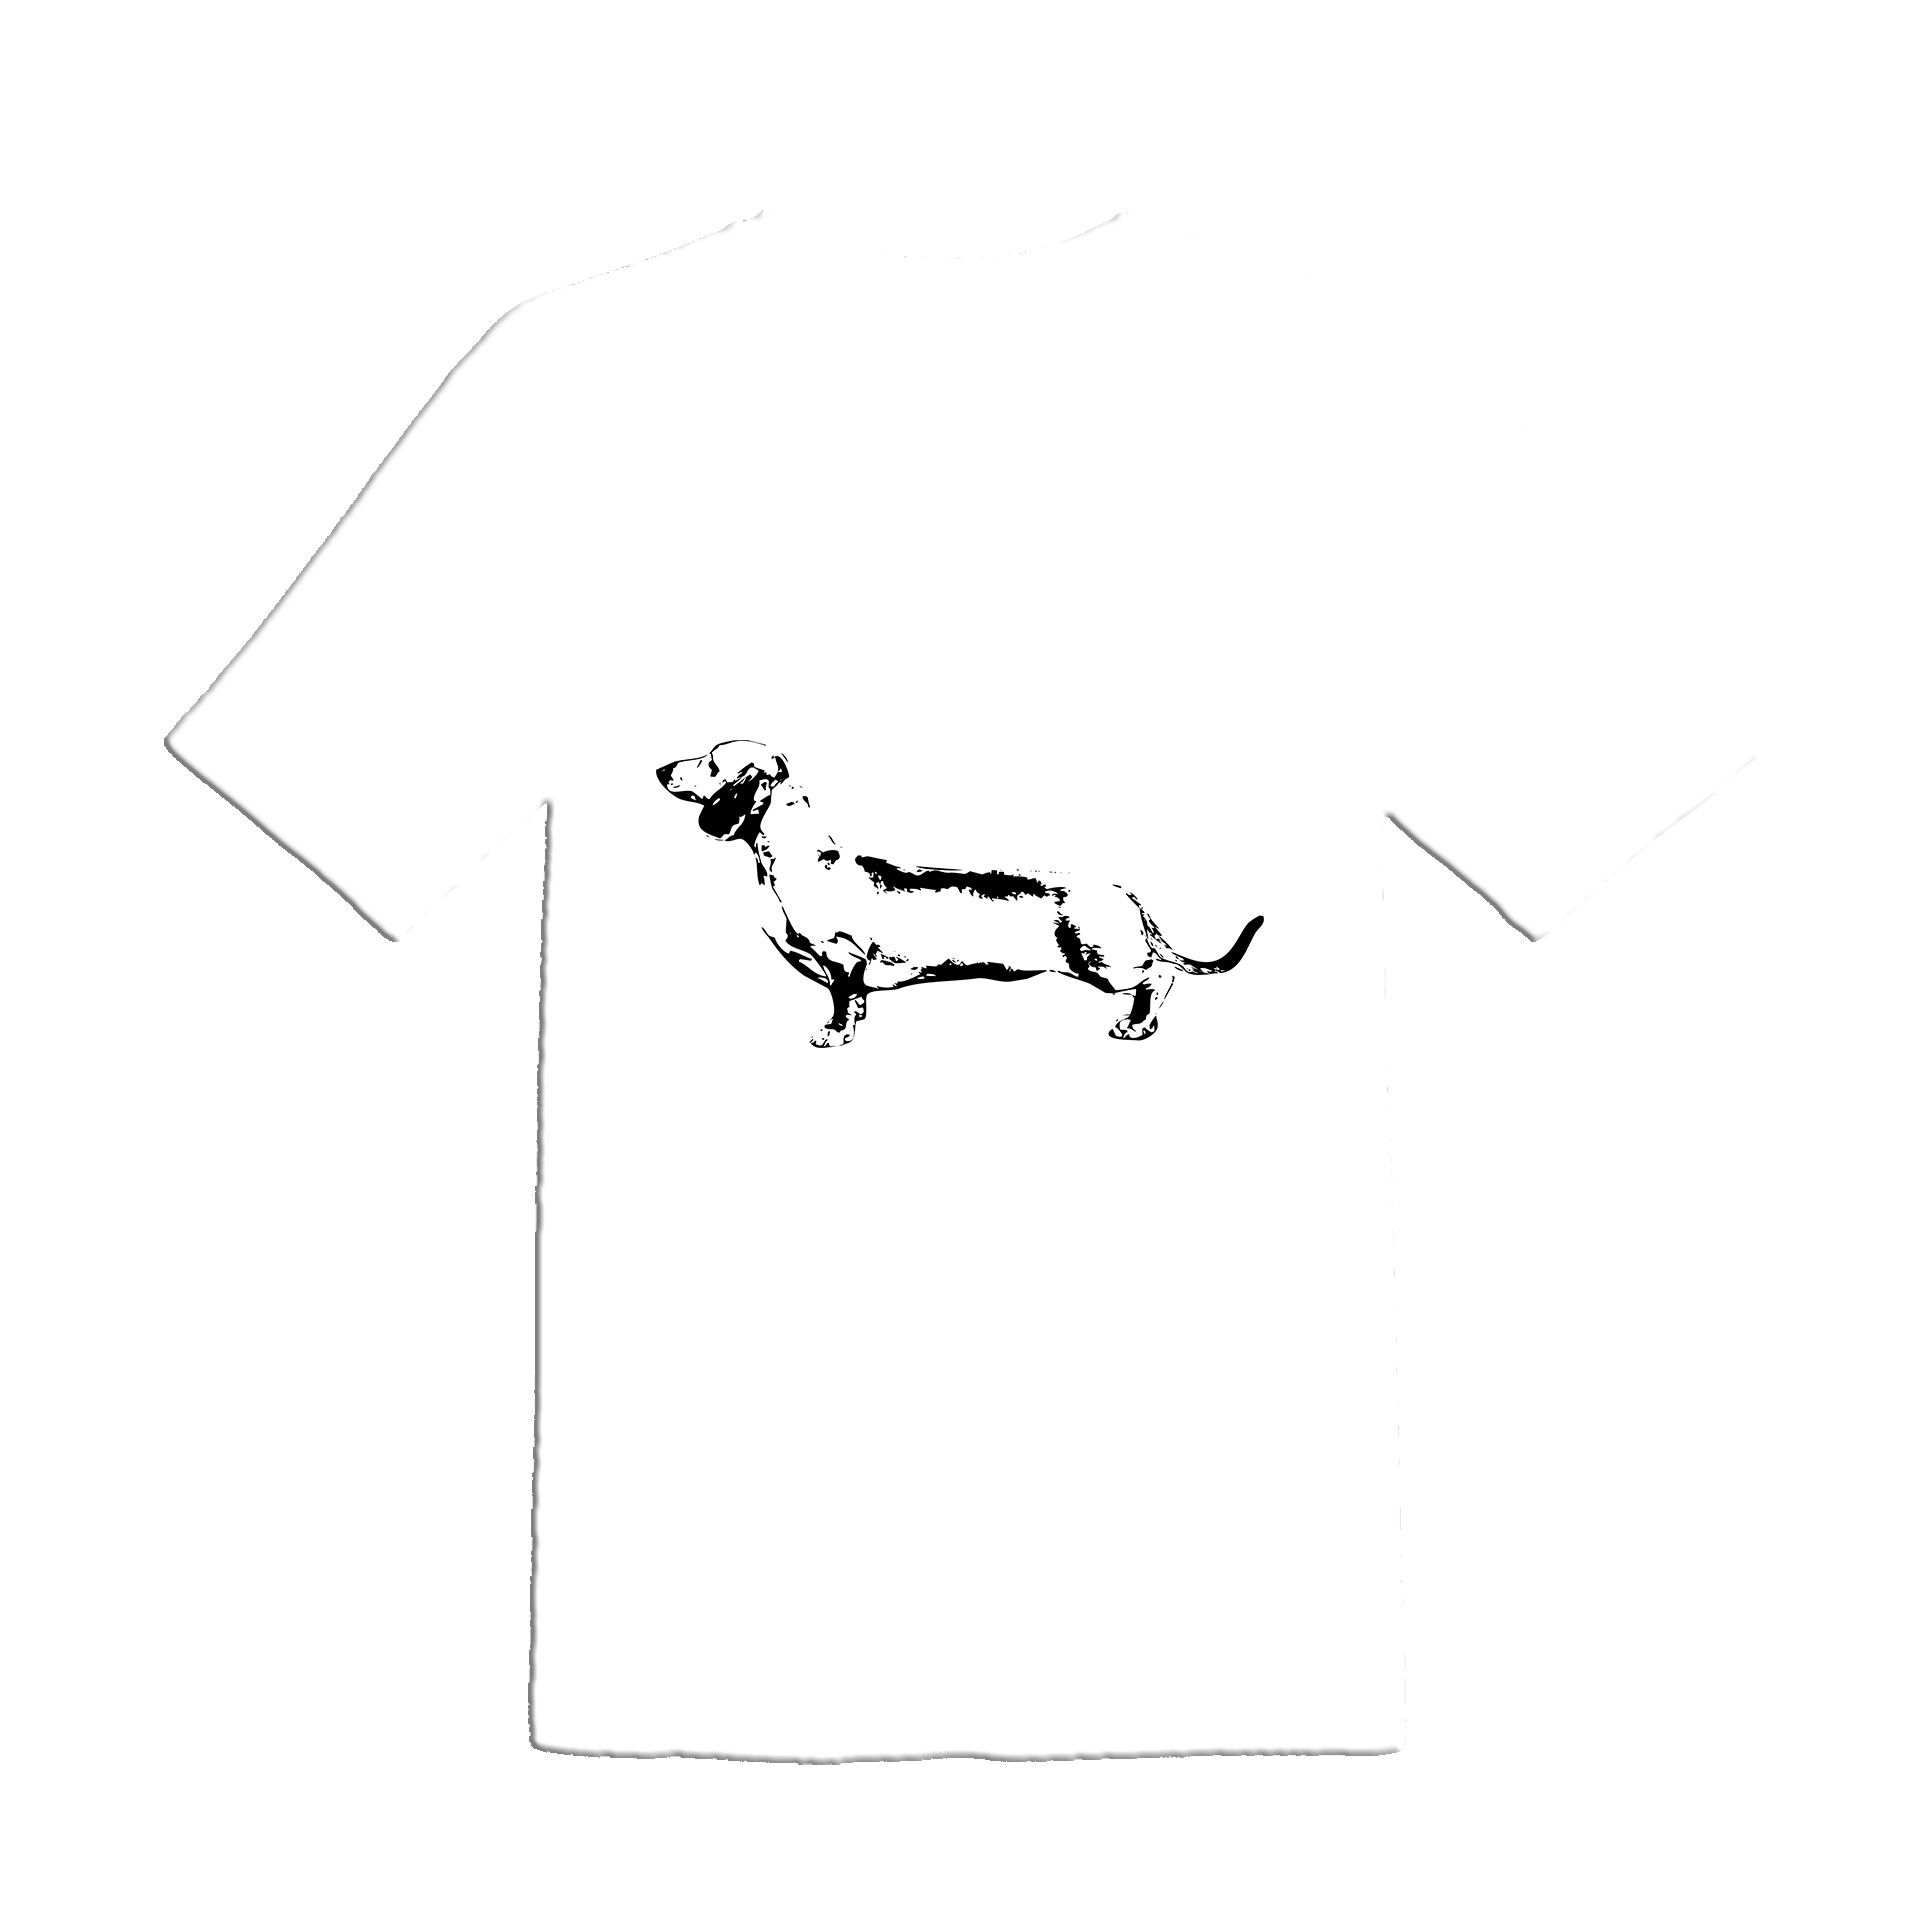 hight resolution of dachshund outline stencil weiner dog vector art images for cut files or prints